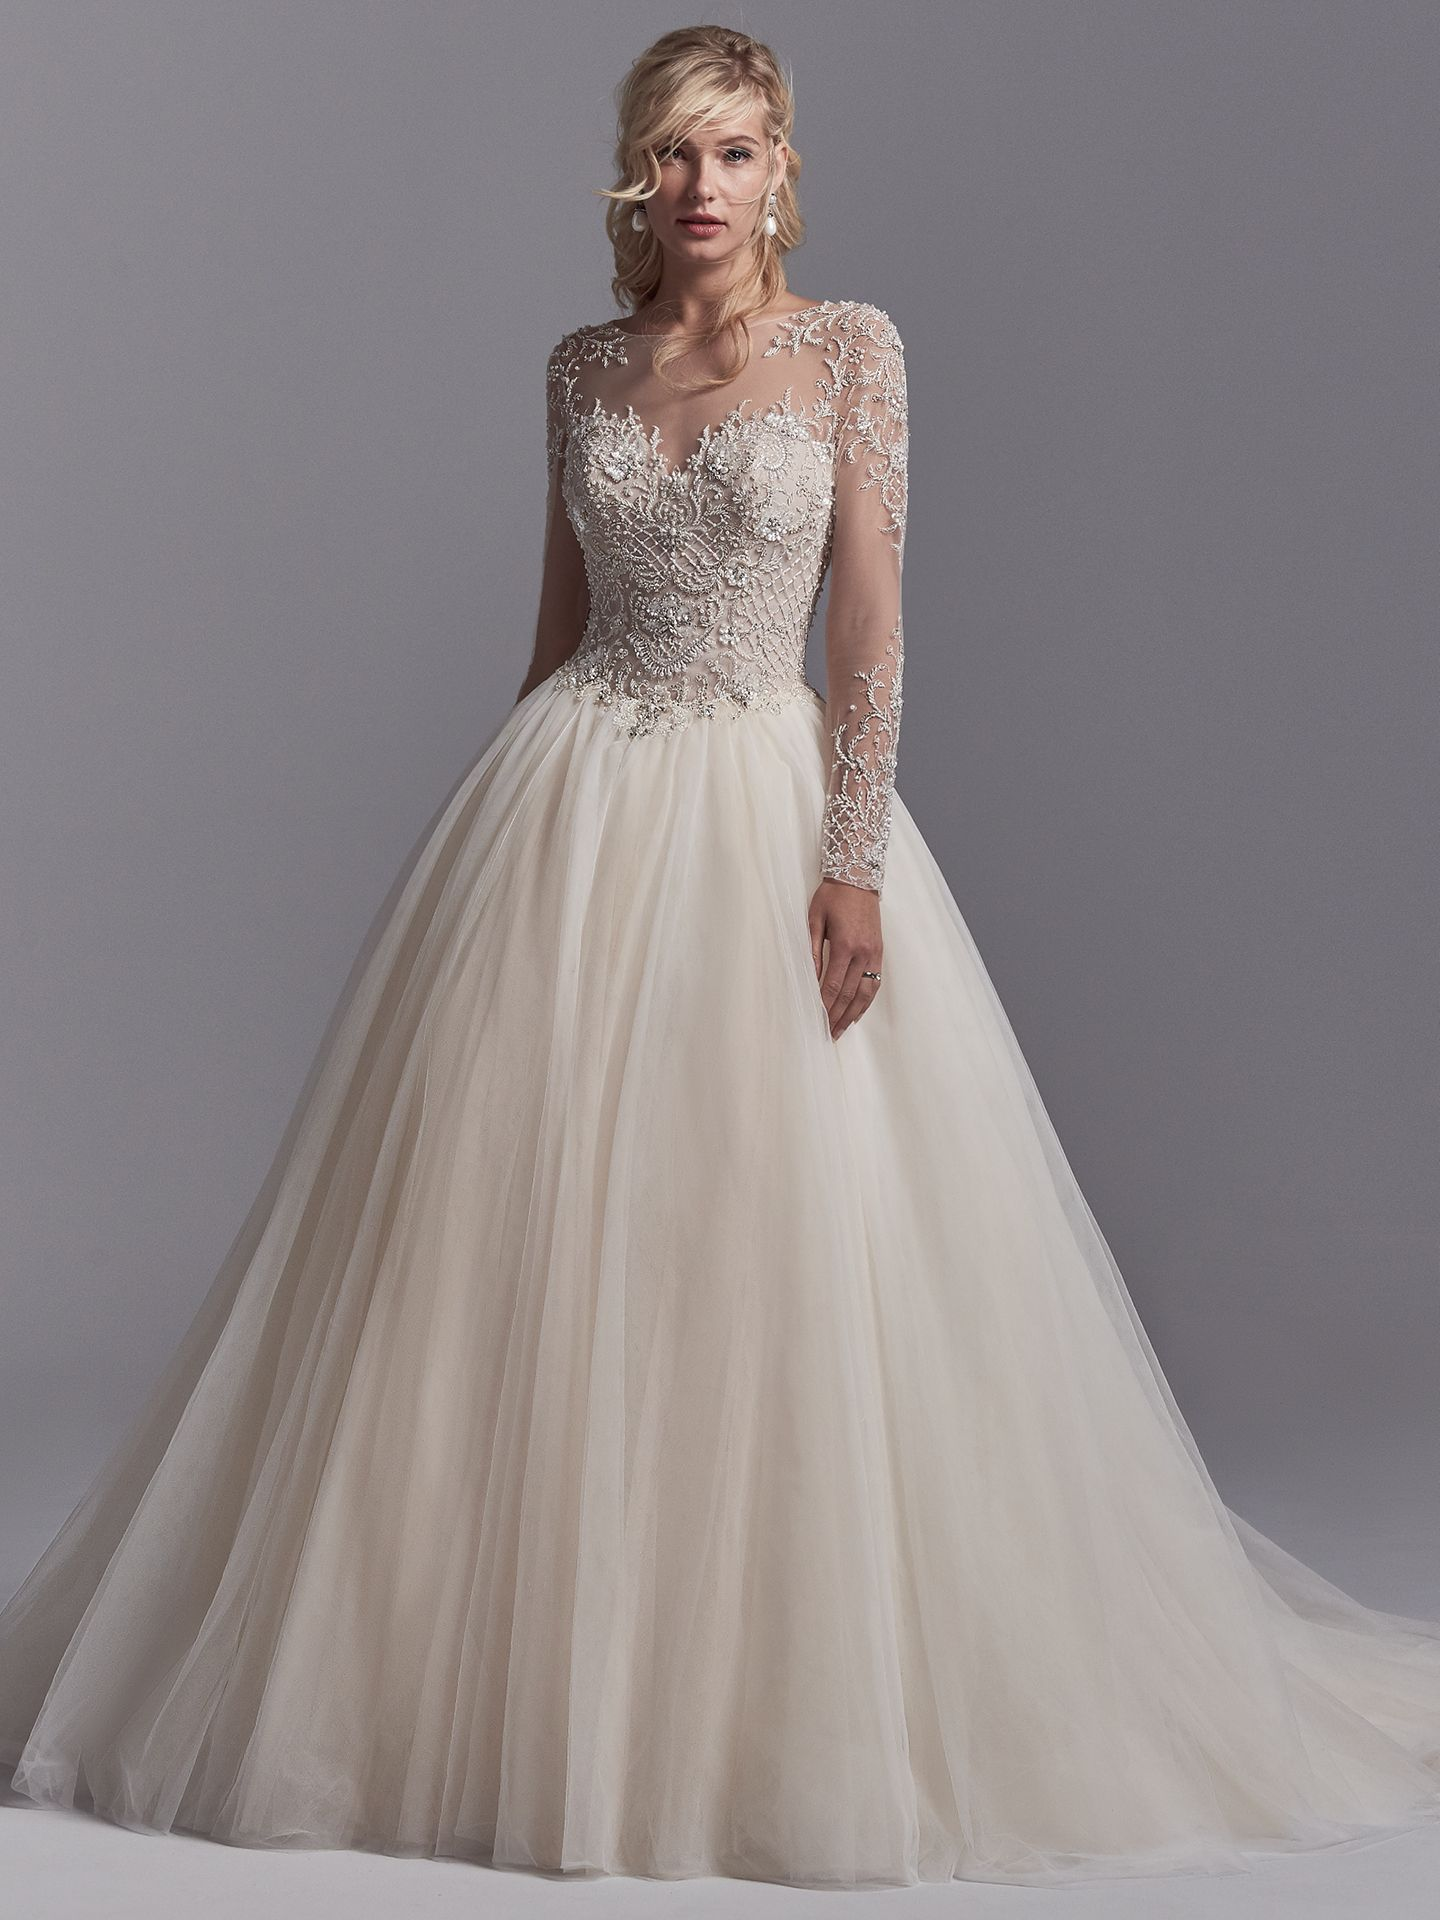 6 best wedding dresses for a rustic wedding love maggie love maggie 6 best wedding dresses for a rustic wedding calvin wedding dress by sottero and midgley junglespirit Gallery